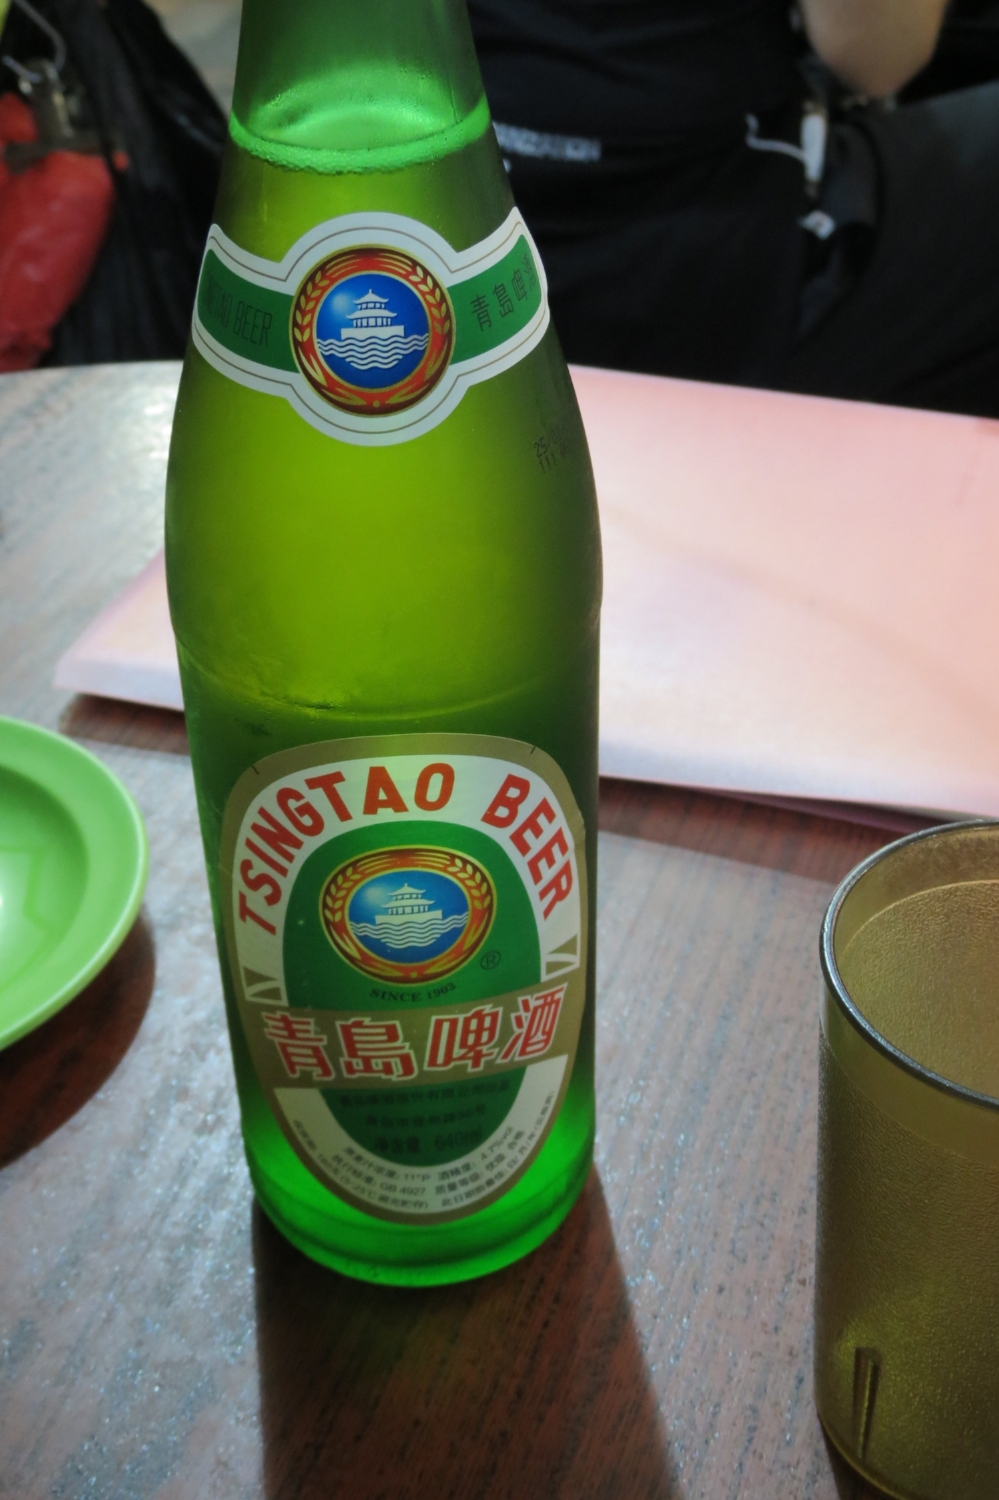 A cold Tsingtao beer complements the fish dinner at Hong Kong's Temple Street Night Market